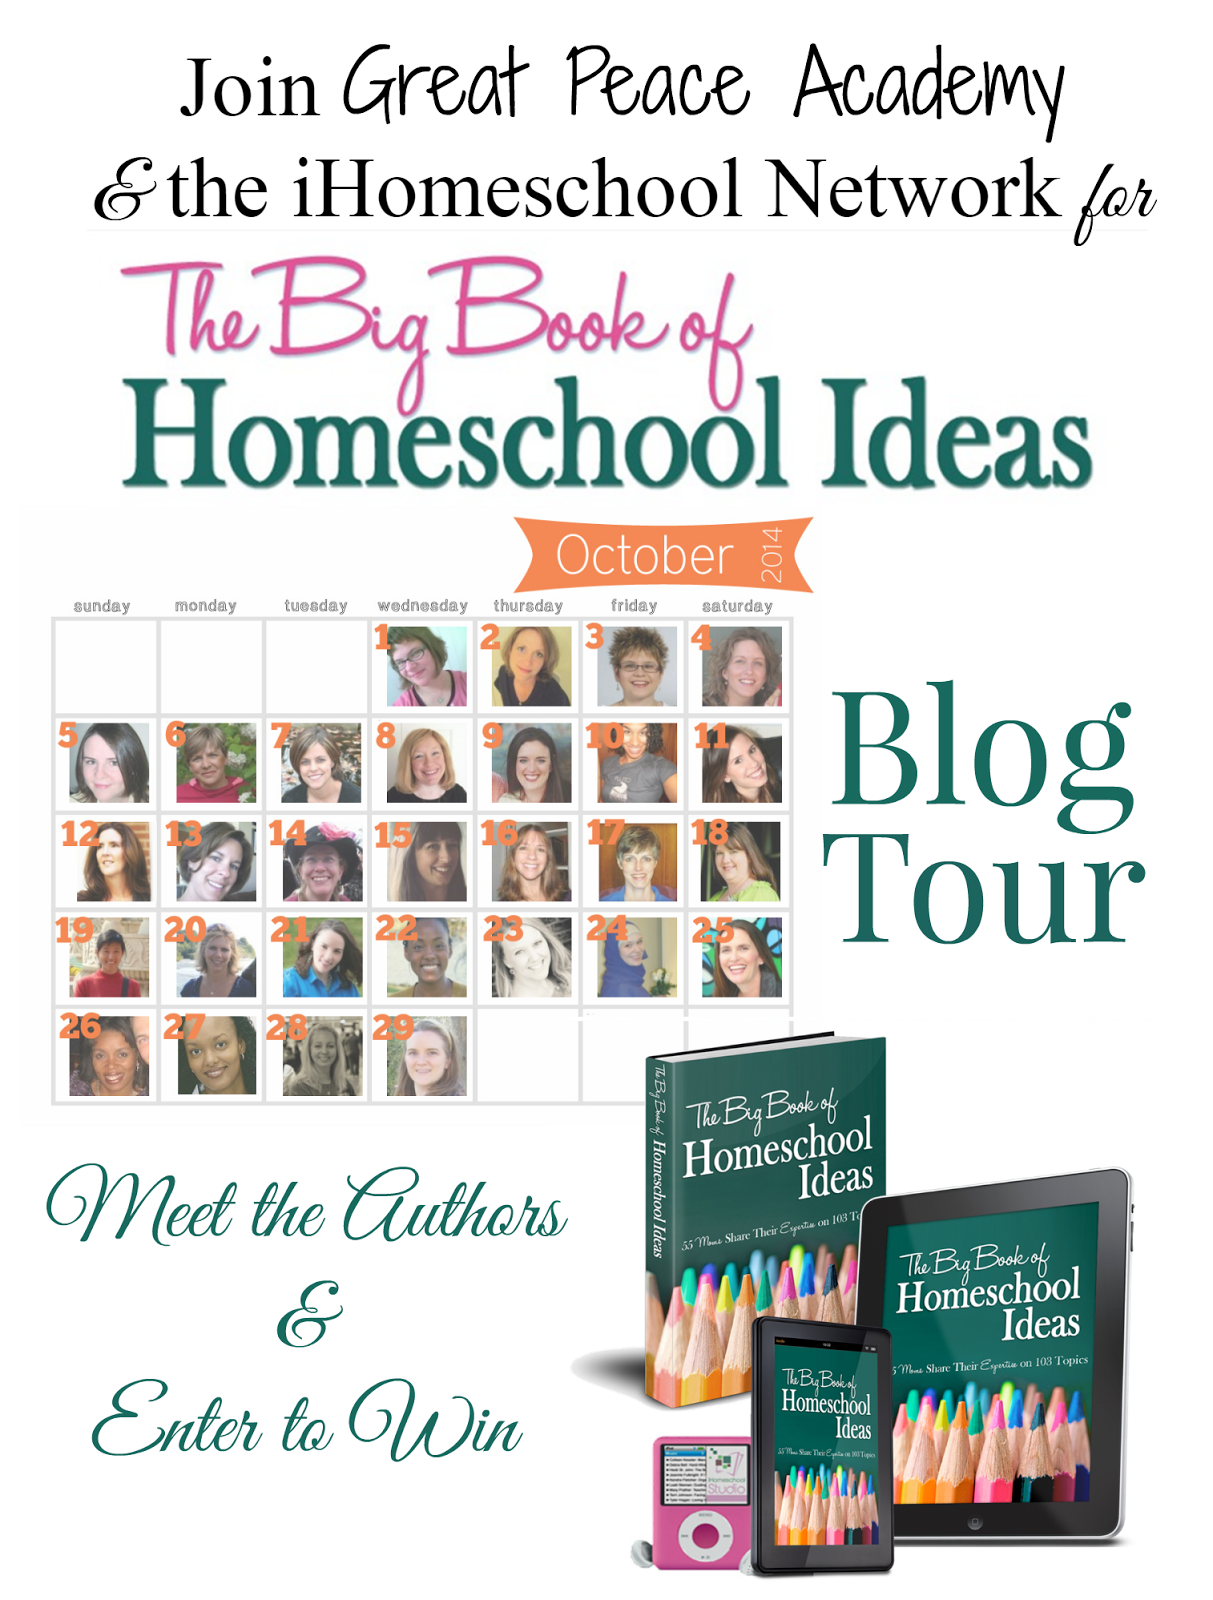 Coming soon the iHomeschool Network's Big Book of Homeschool Ideas Blog Tour, get more information at Great Peace Academy